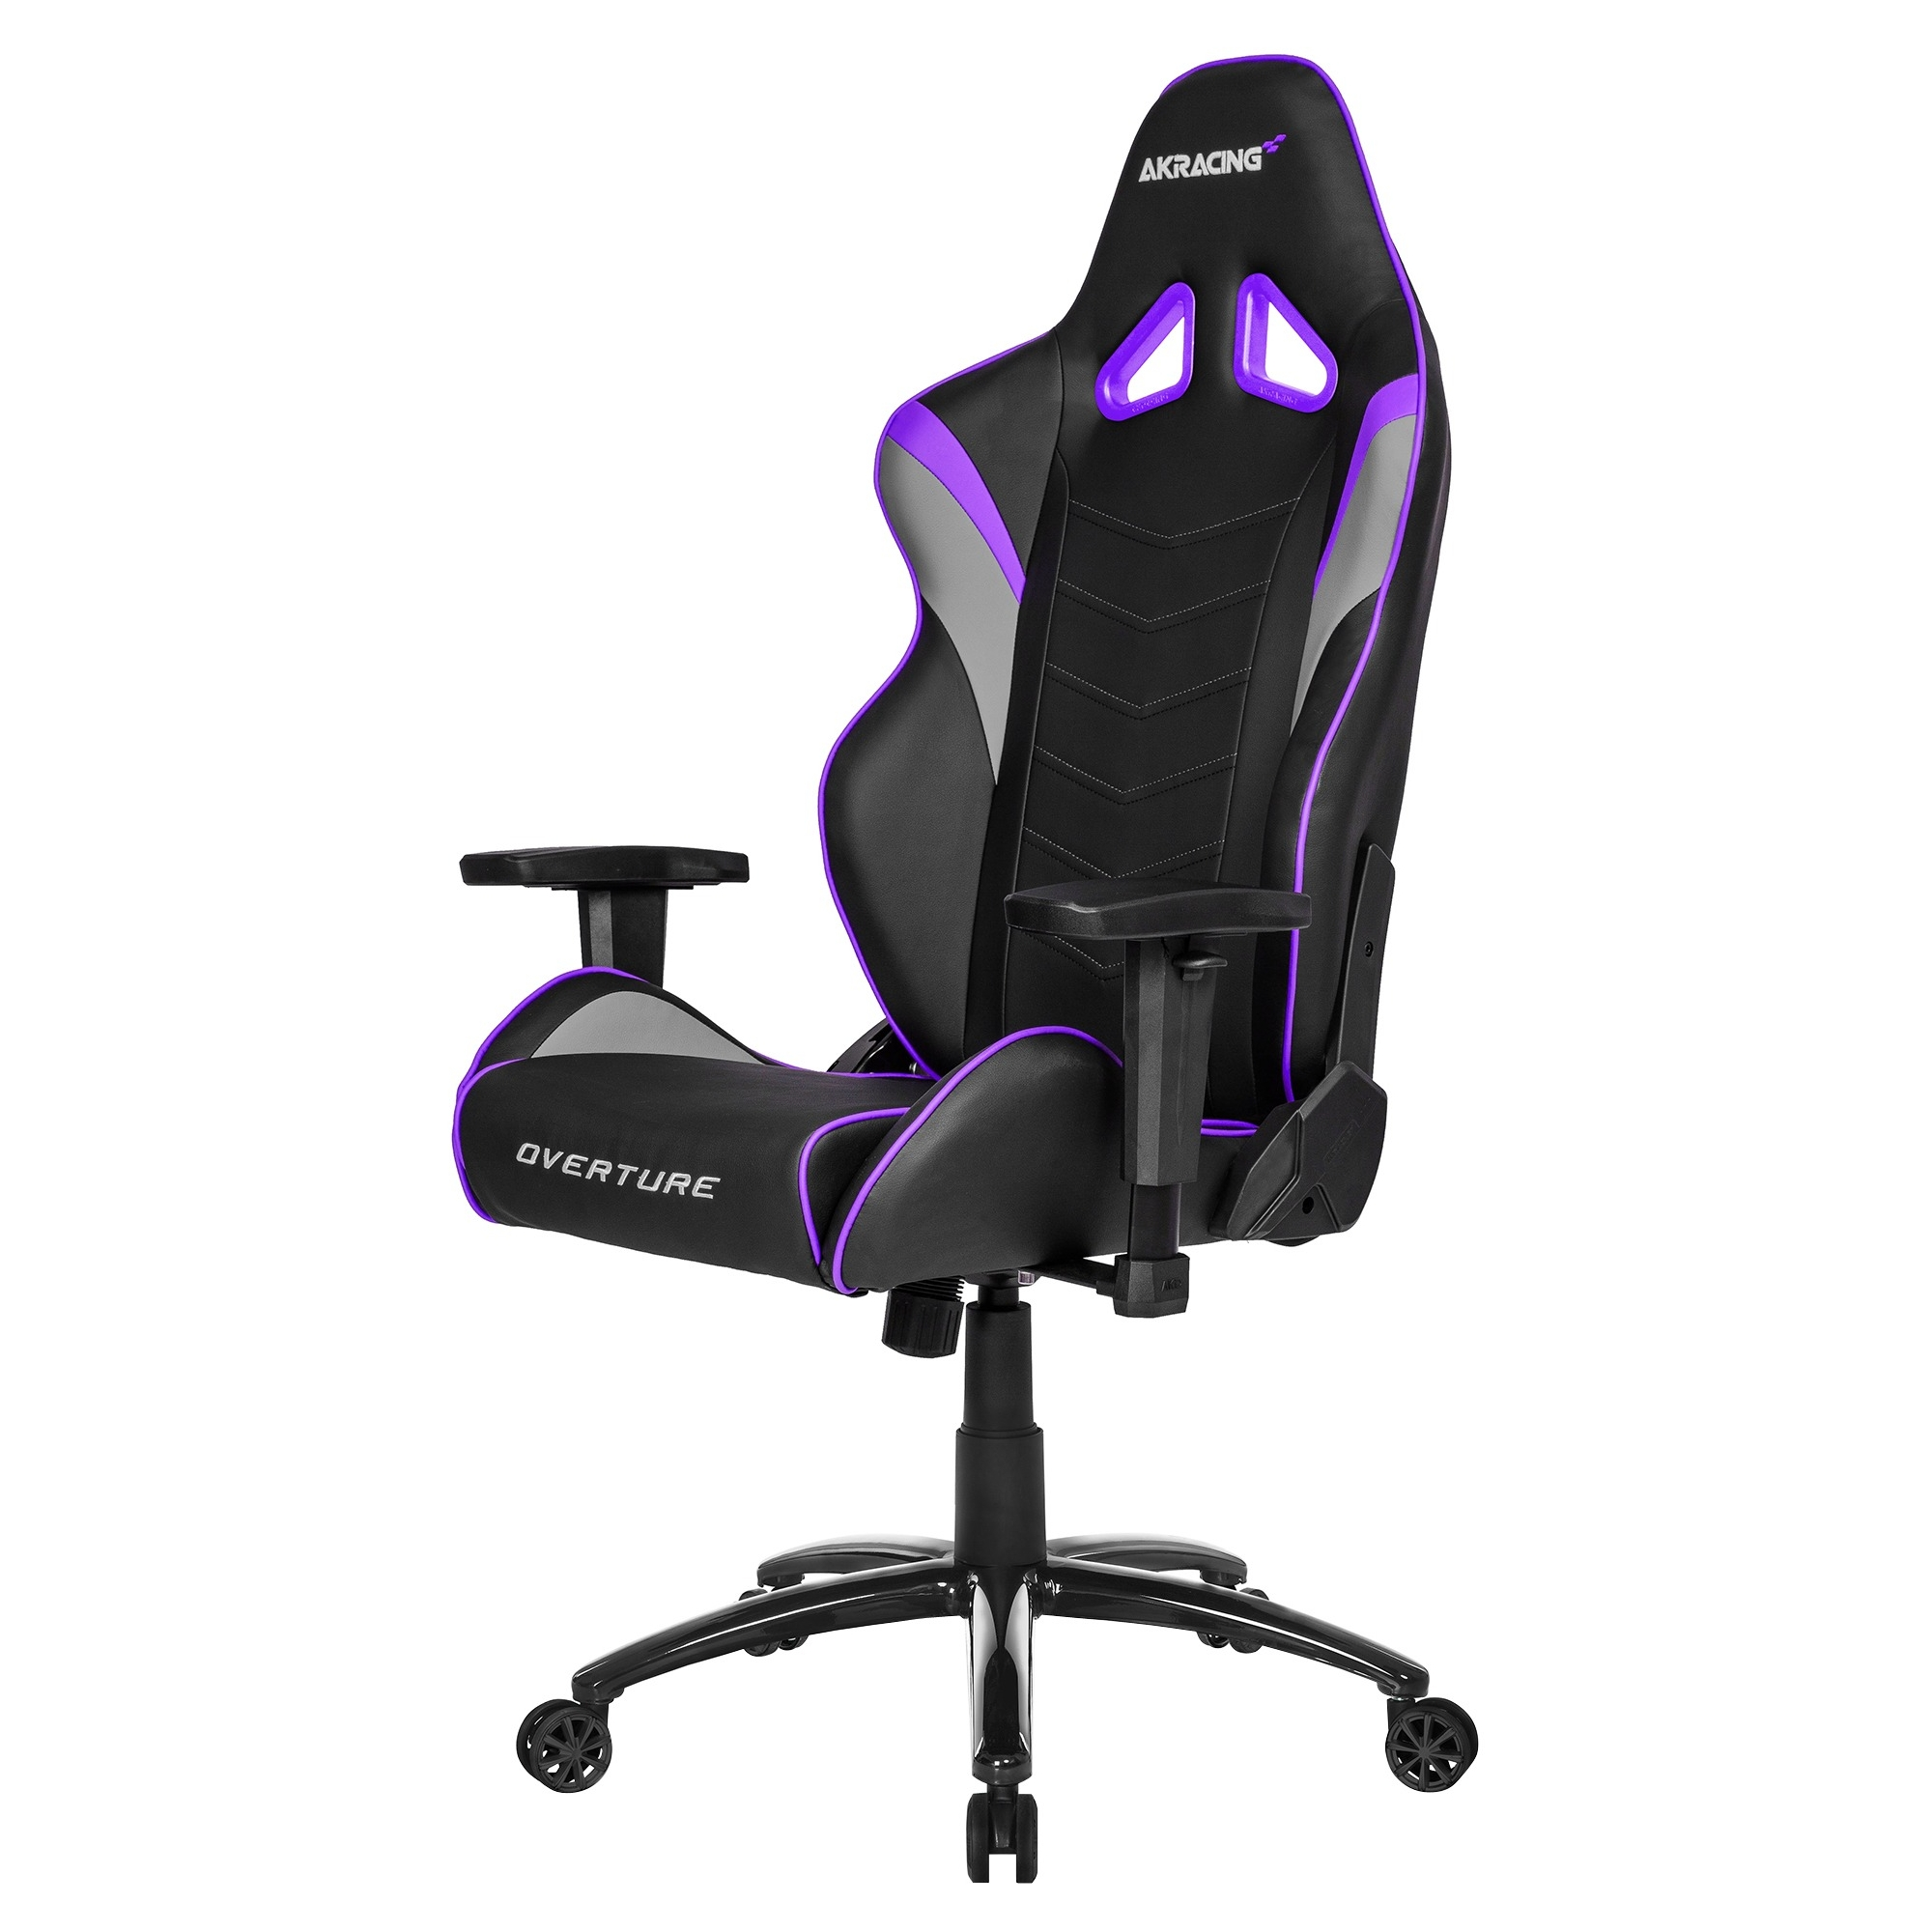 Image of ERGONOMIC GAMING CHAIR INDIGO ADJ ARMS ND HEIGHT RECLINE PLEATHER